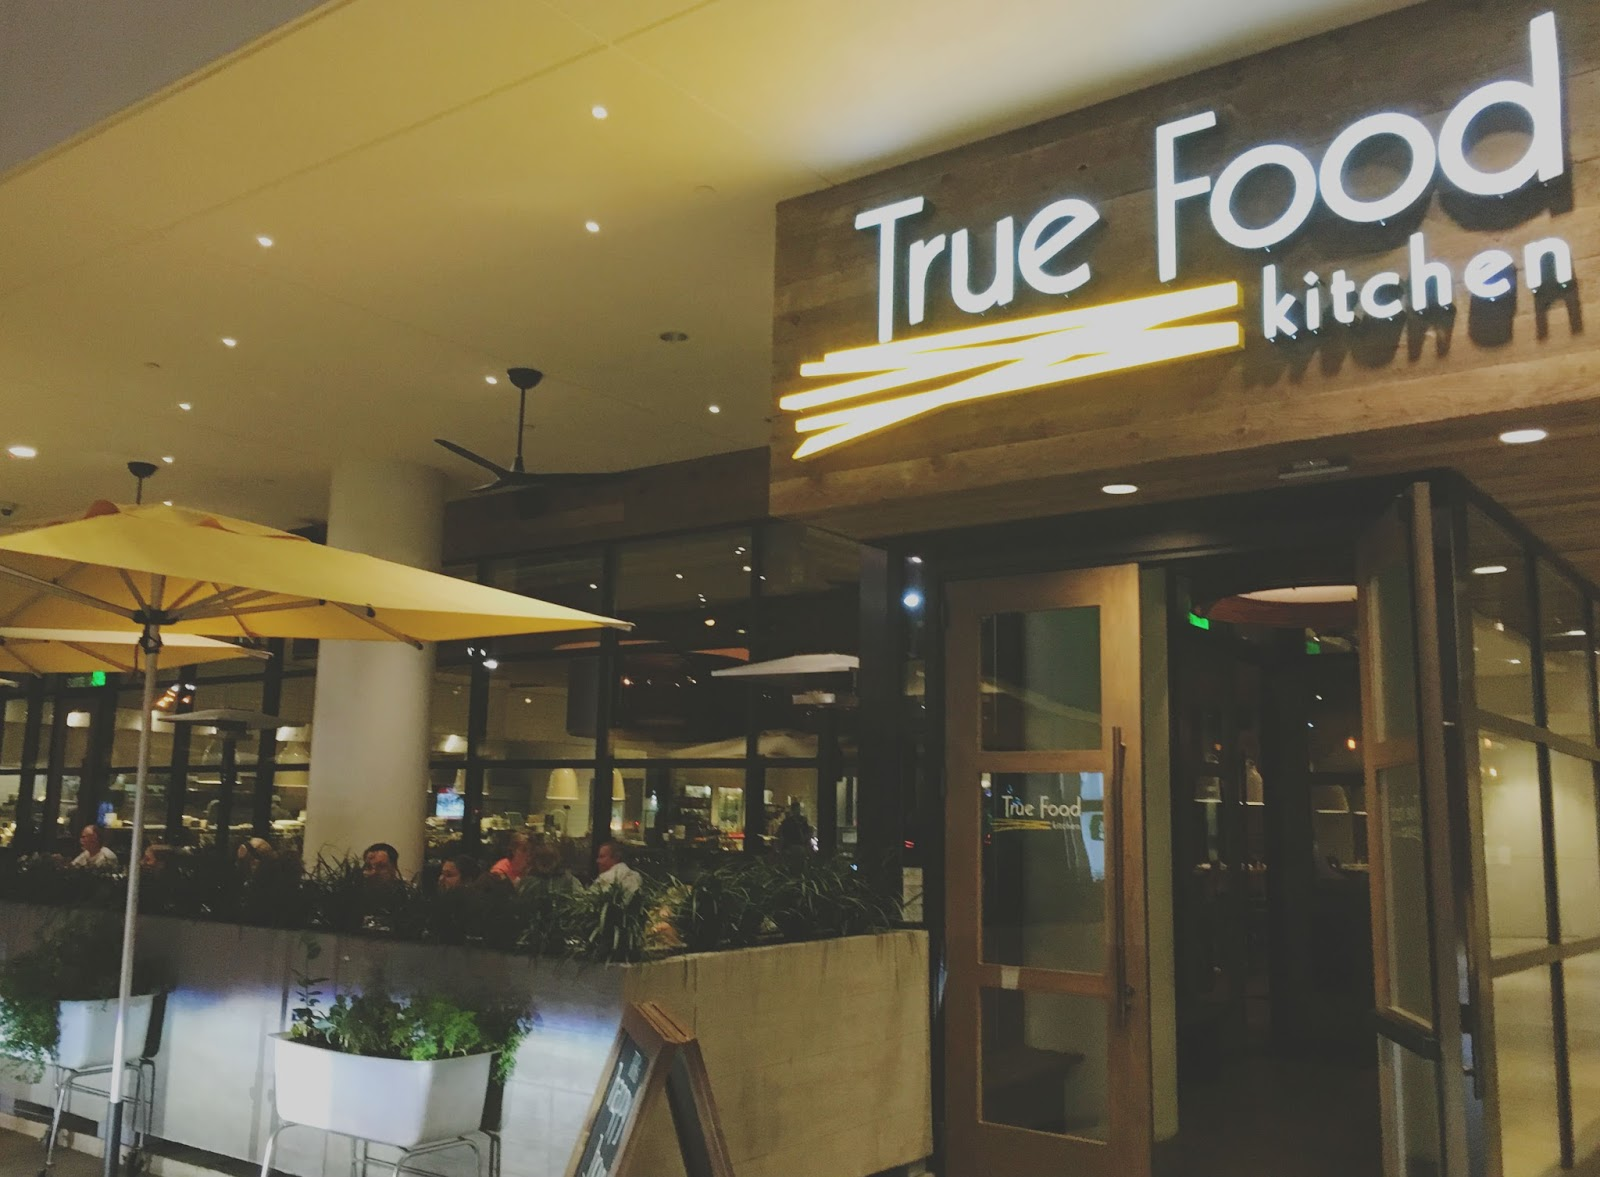 True Food Kitchen - a restaurant in Houston, Texas